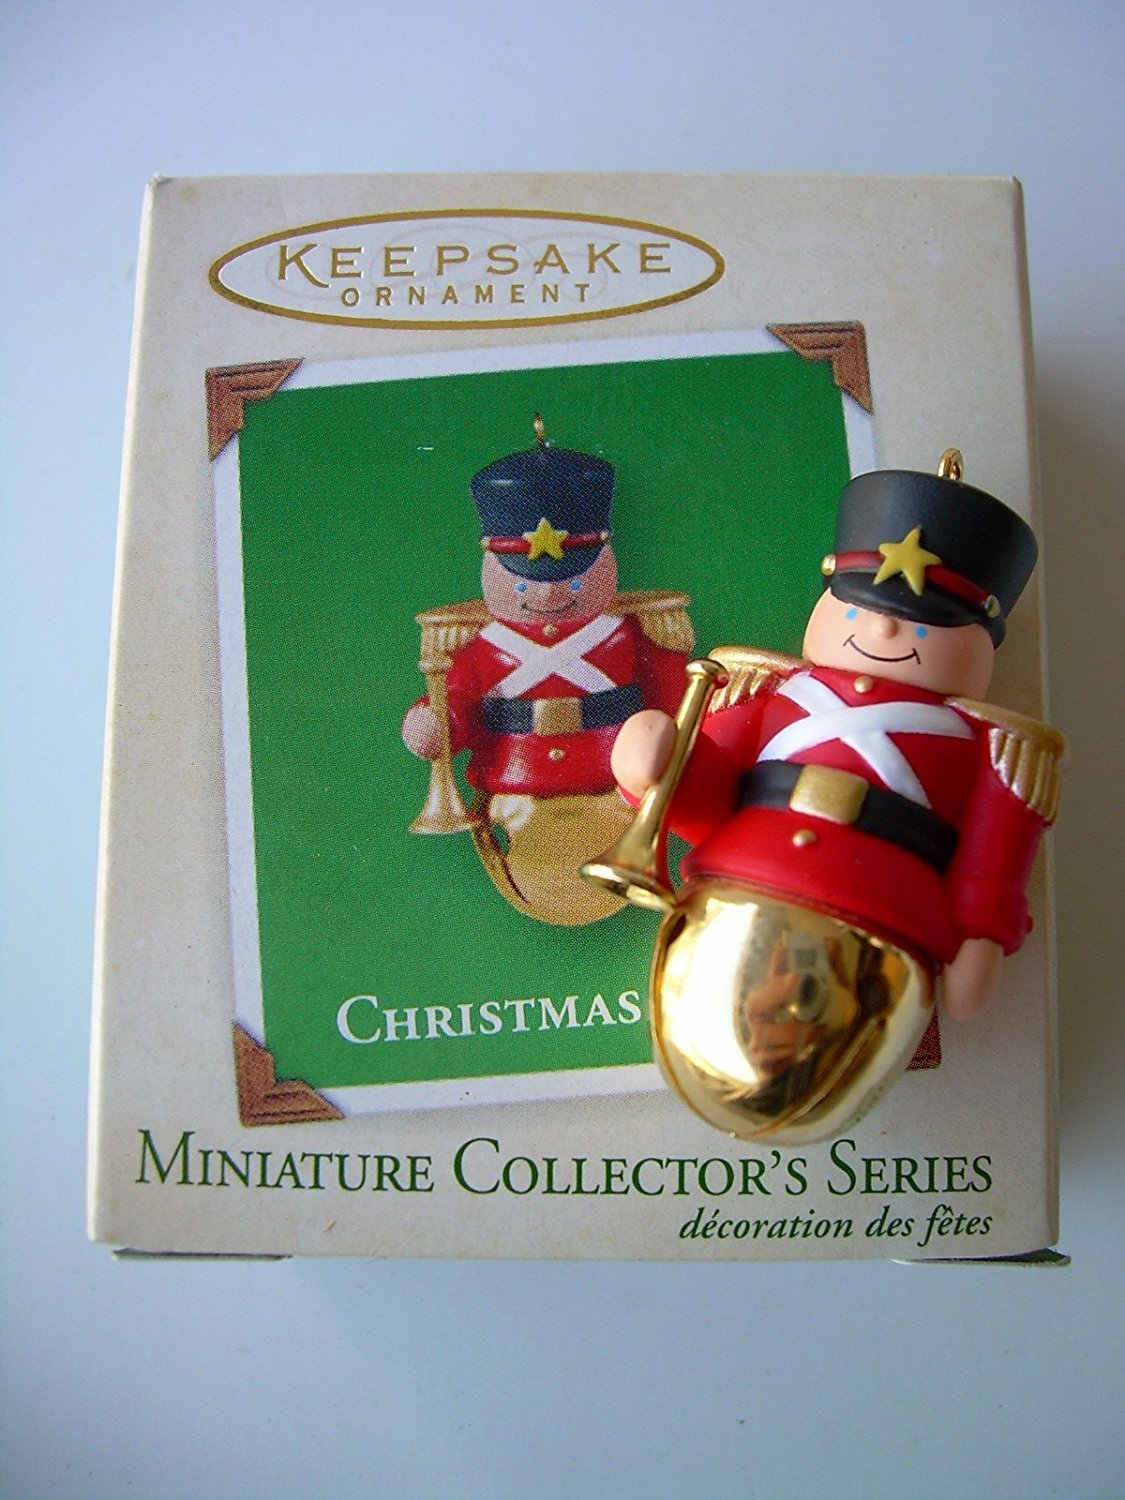 Christmas Bells Miniature Ornament 9th in Series by Hallmark